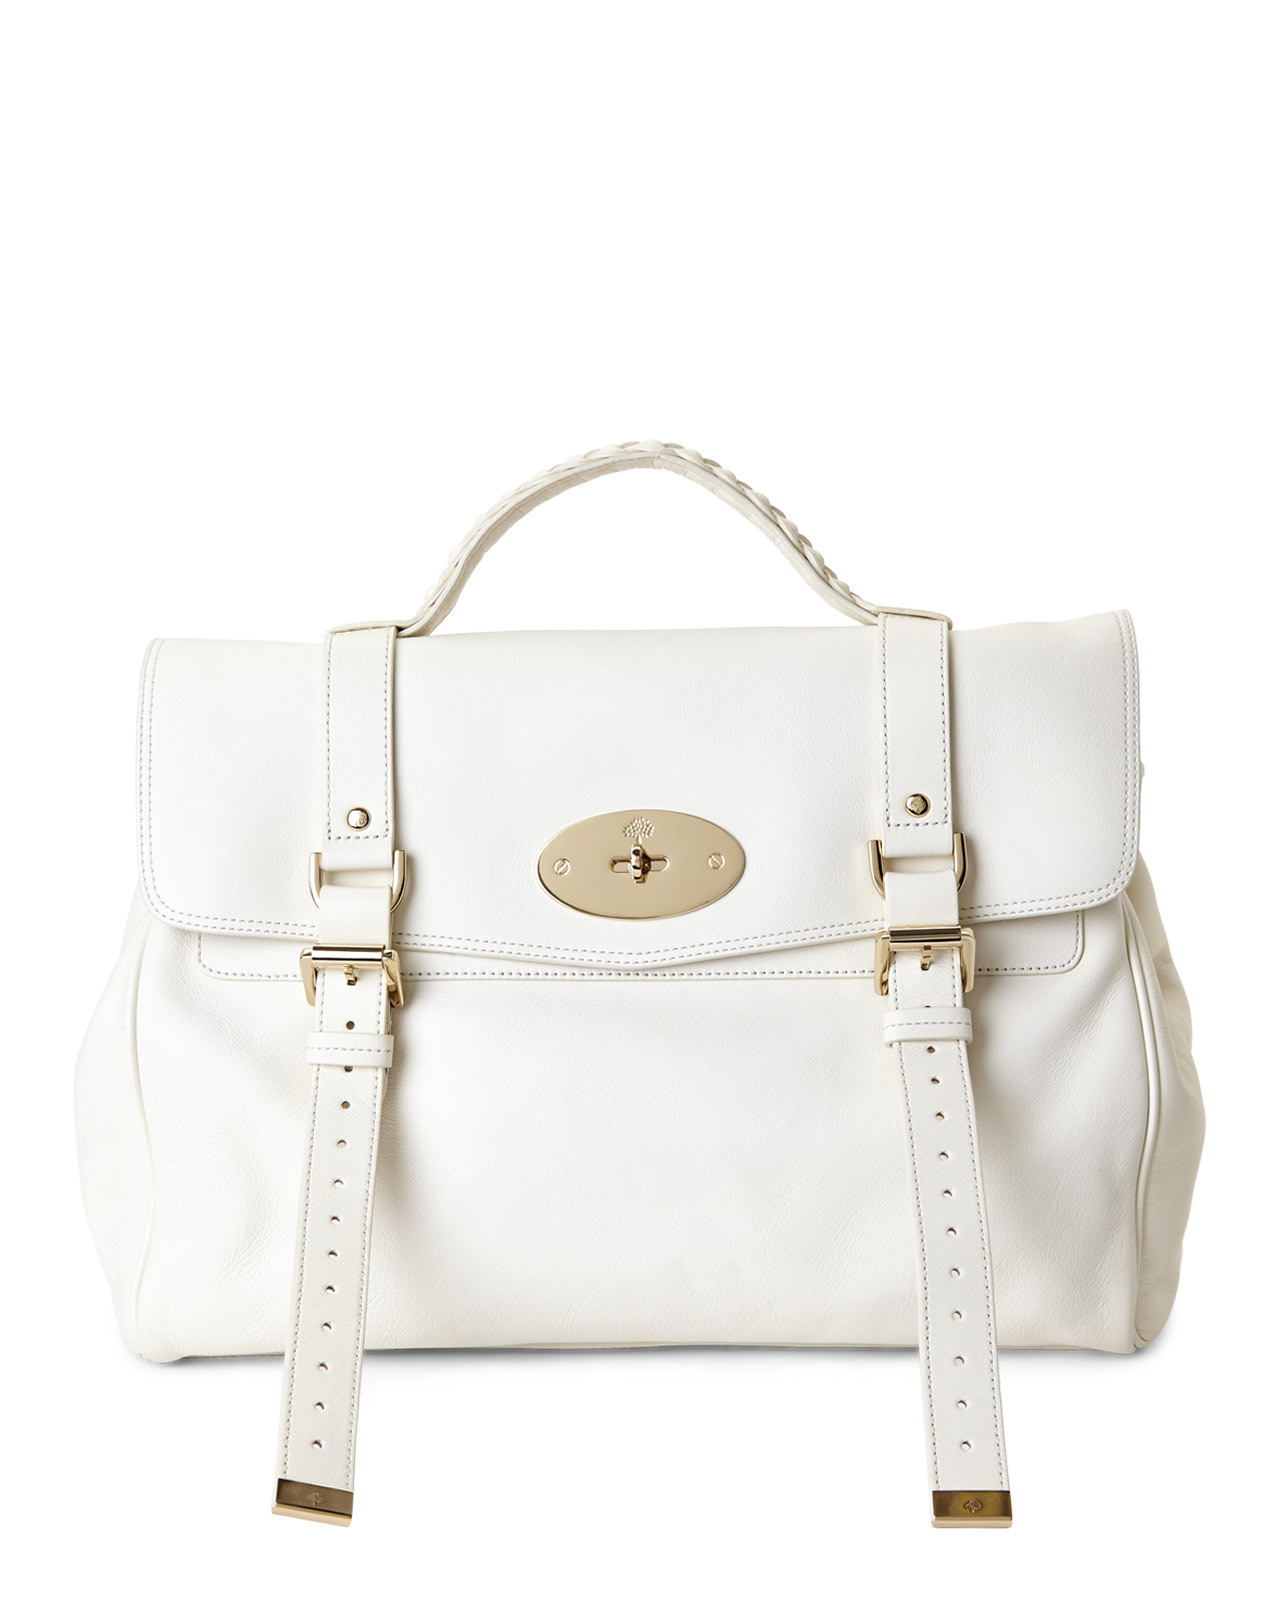 f10afe2aff5 ... cheapest lyst mulberry cream oversized alexa handbag in white 72c8d  51f7f ...